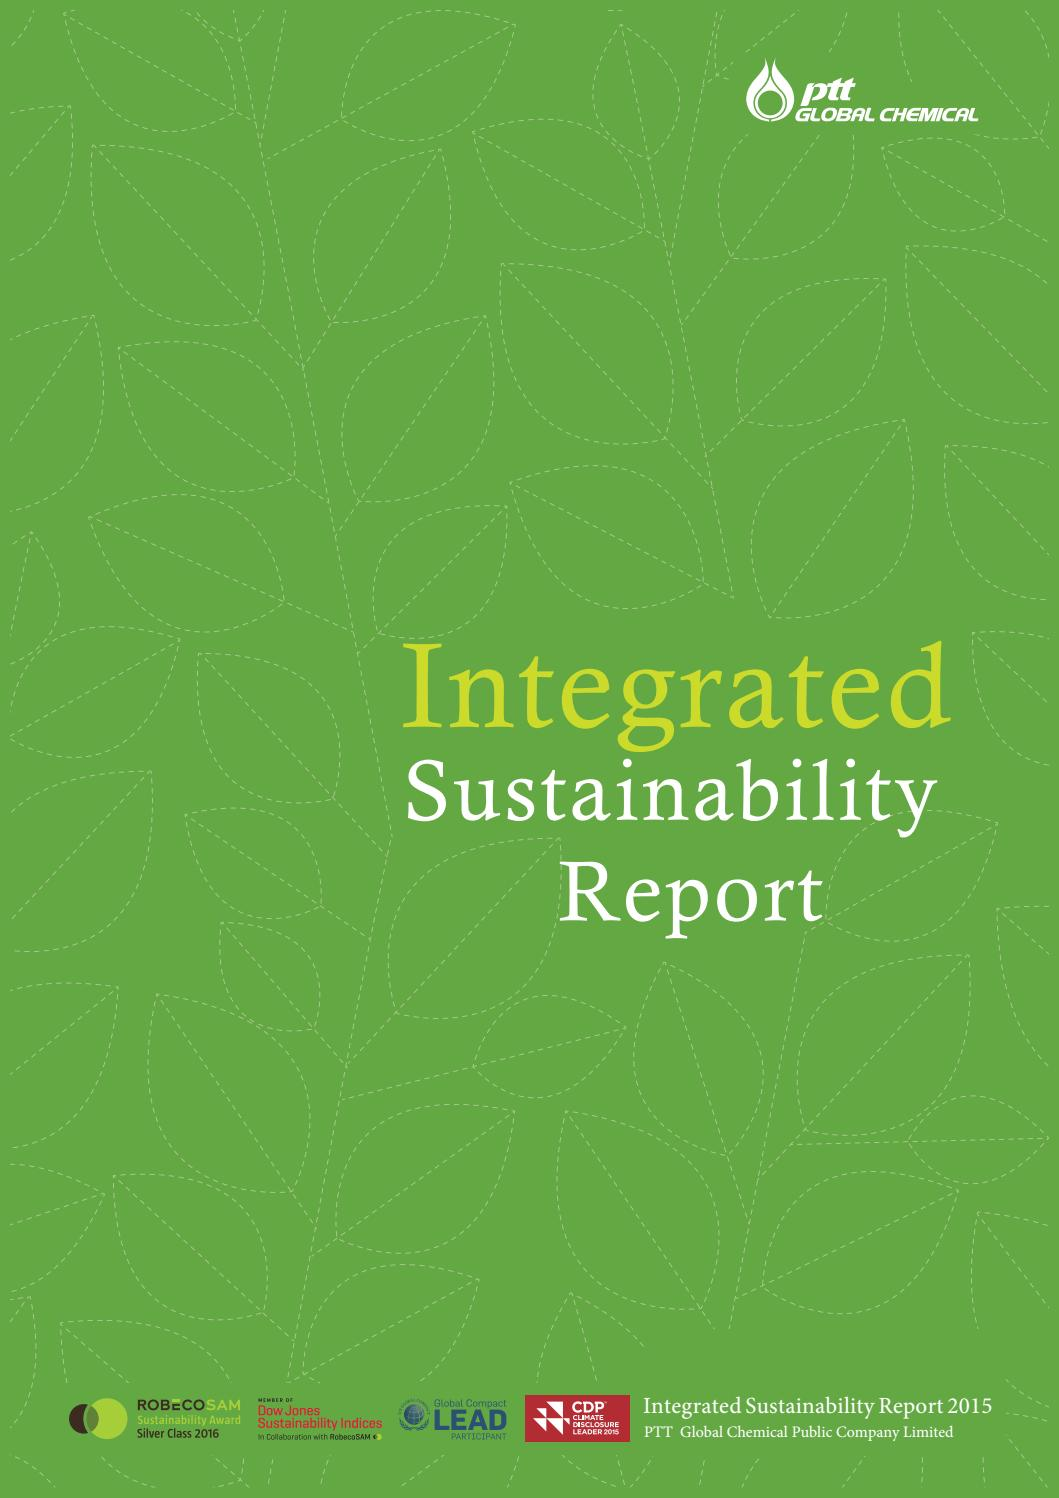 PTTGC: Integrated Sustainability Report 2015 by Piyanat